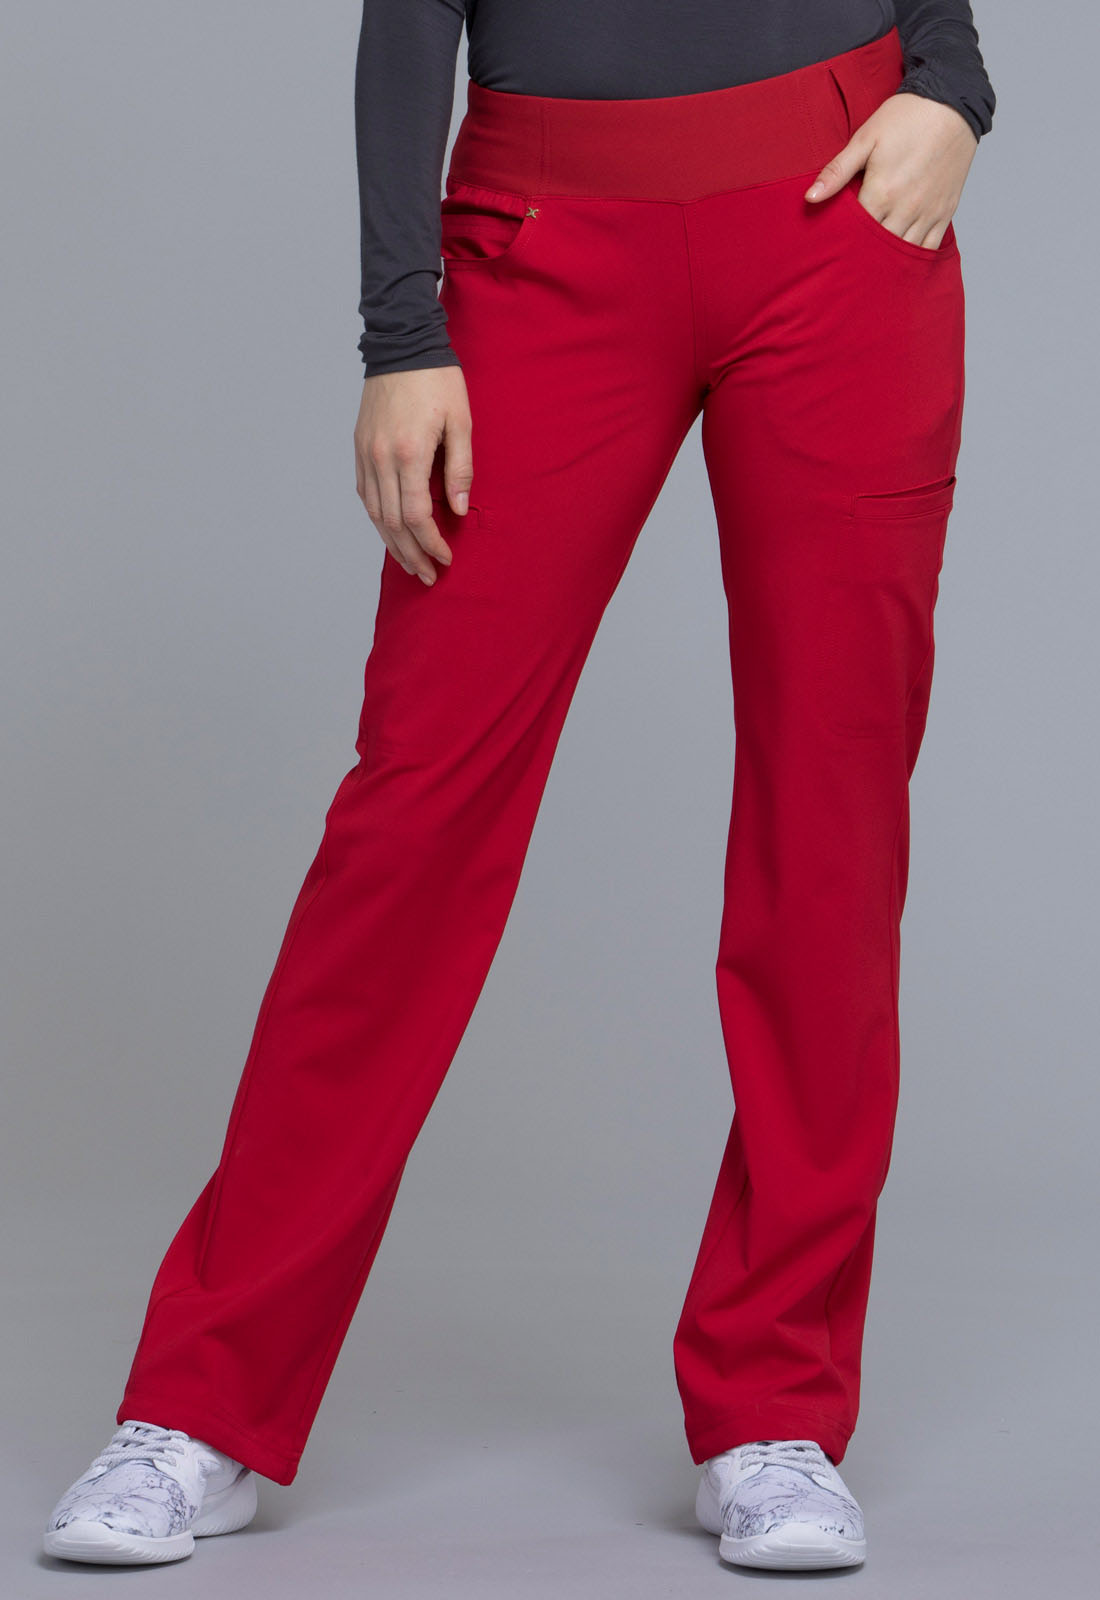 57be6eae974 Cherokee iFlex Mid Rise Straight Leg Pull-on Pant CK002-RED from ...